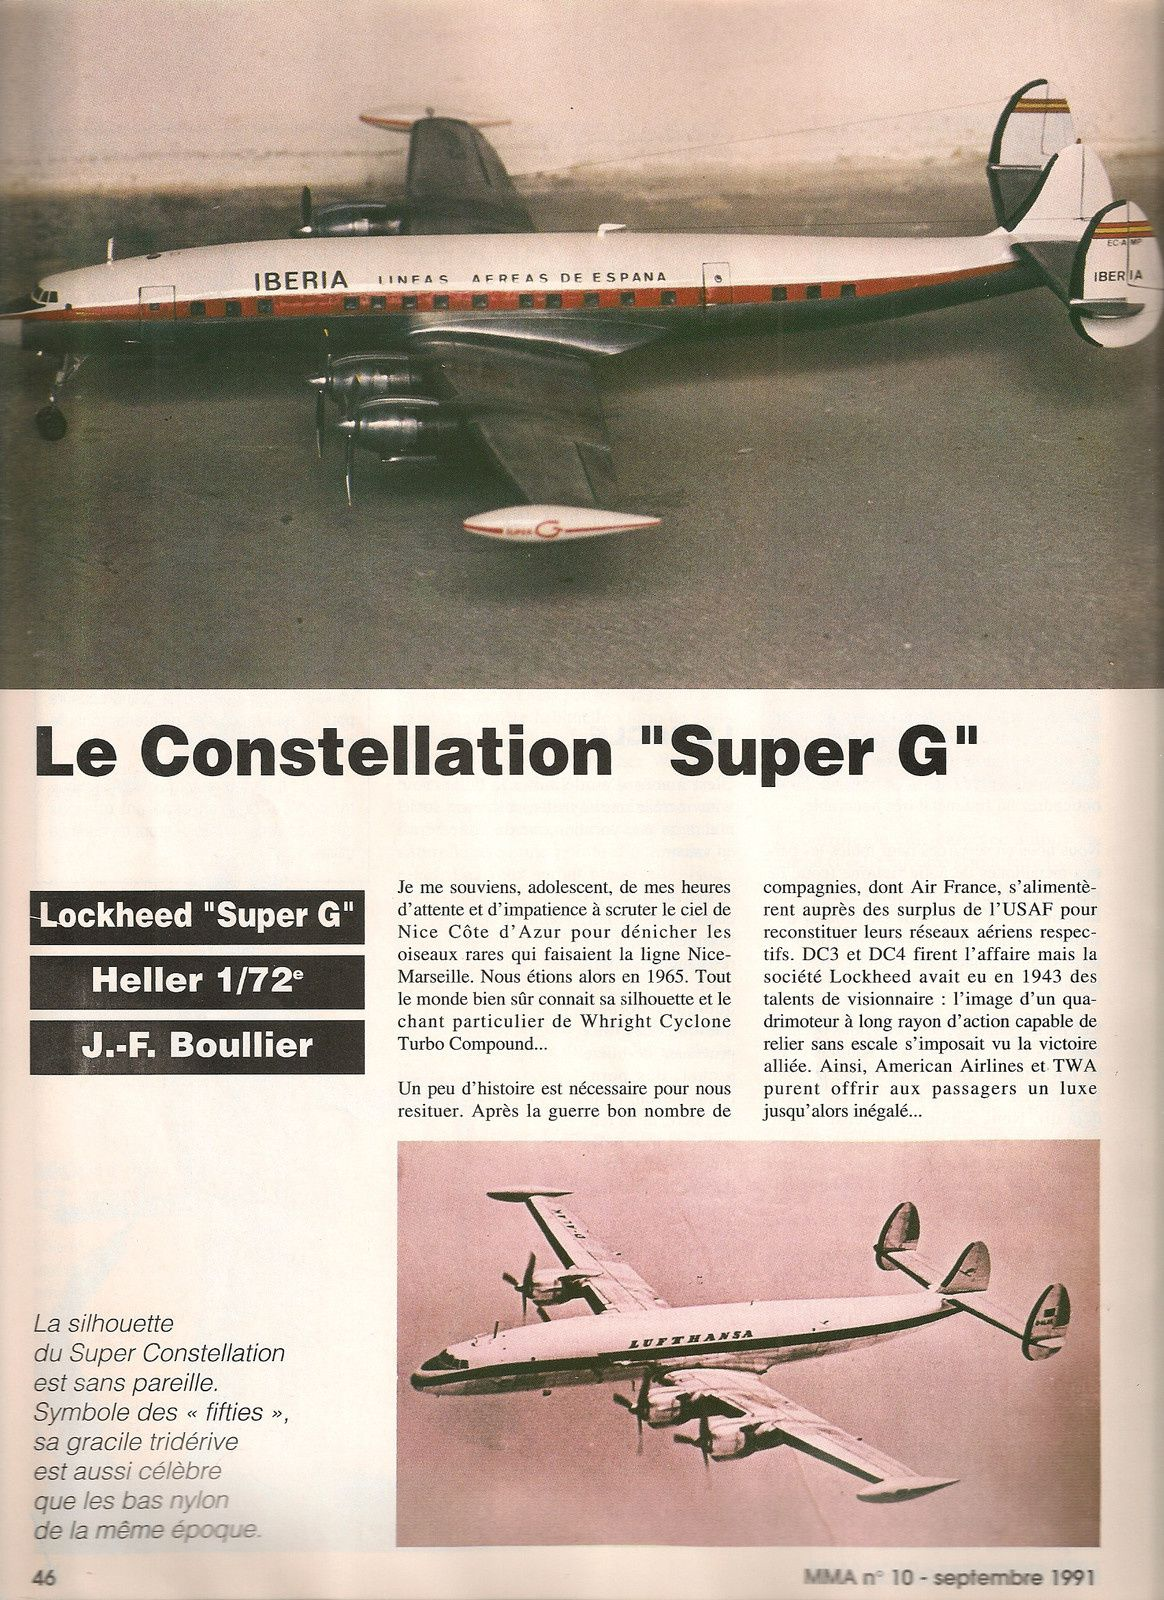 Lockheed constellation super G